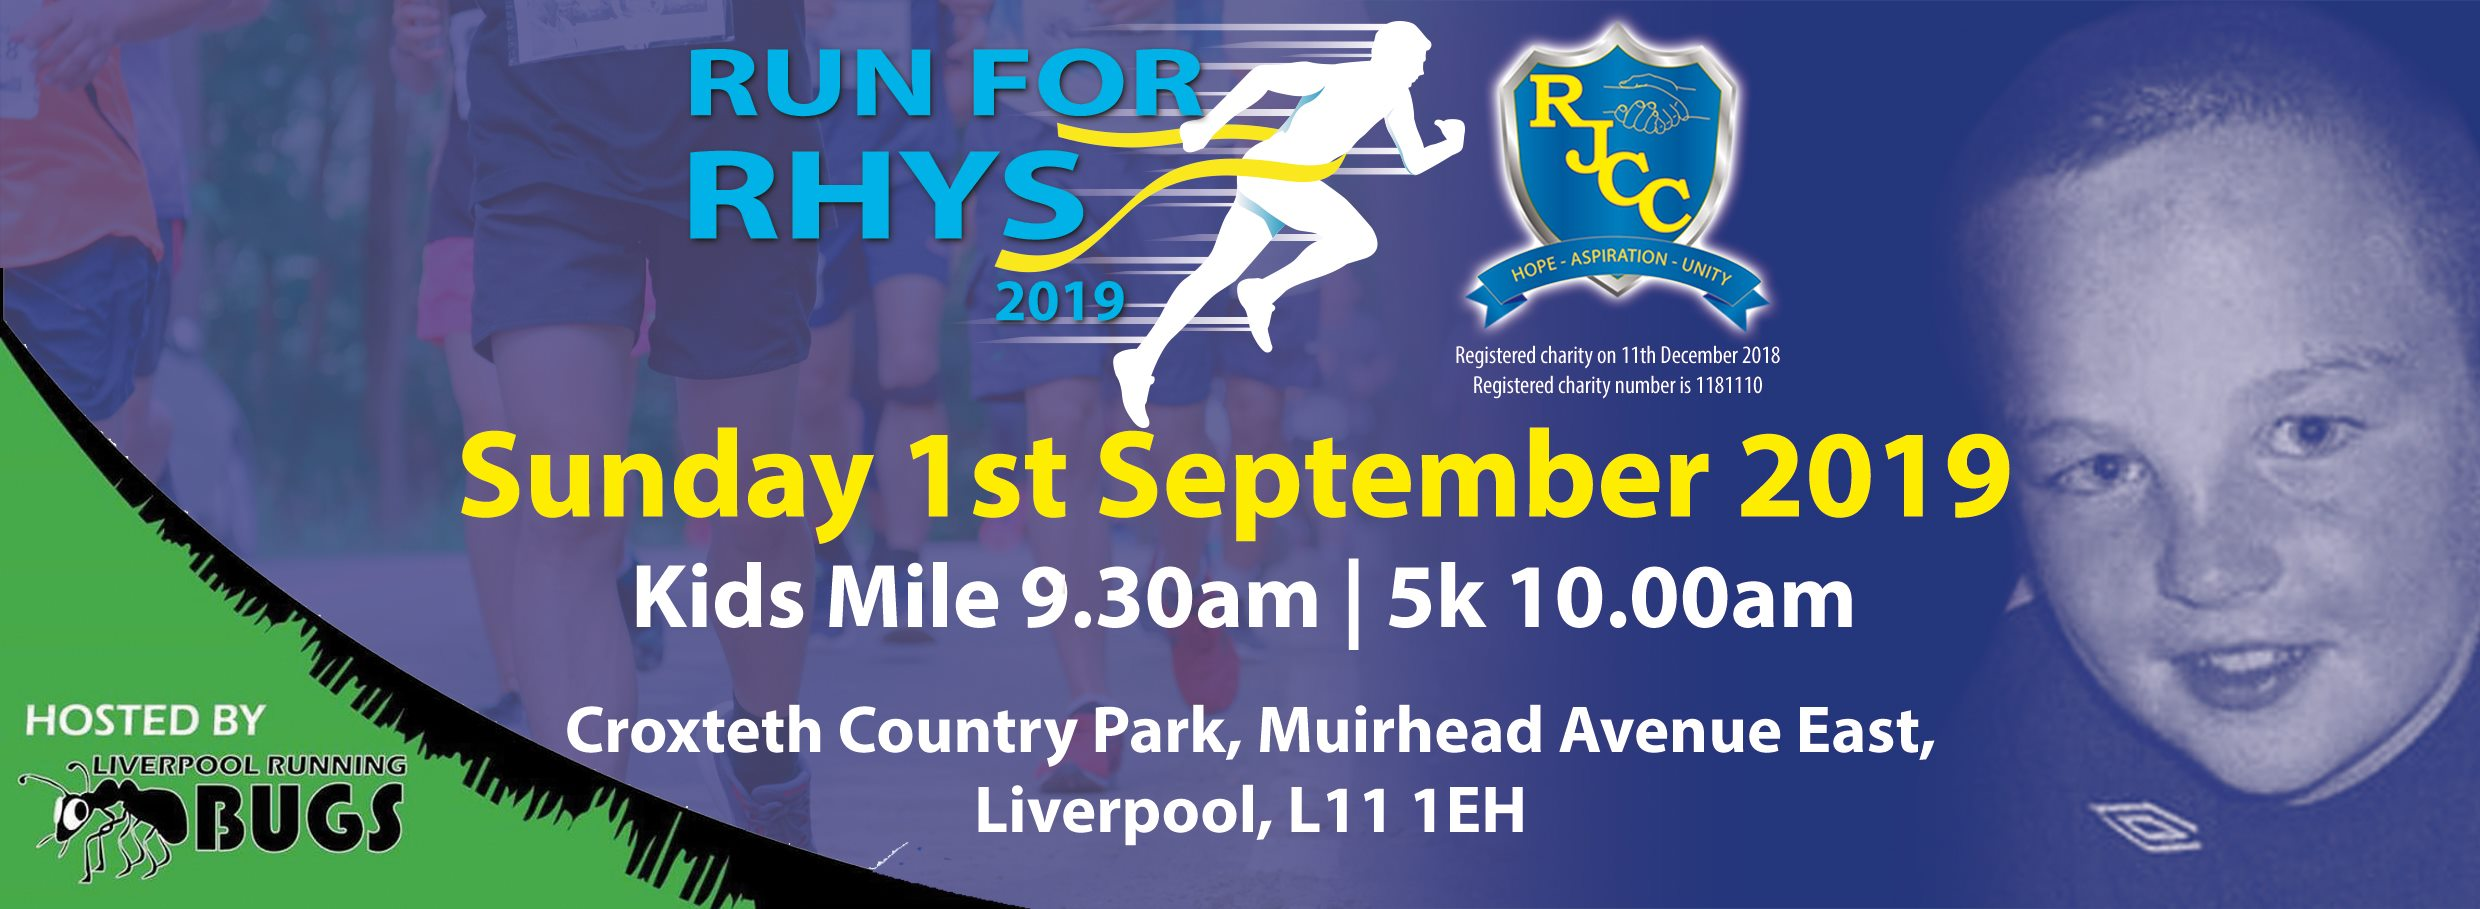 Run for Rhys 2019 Legacy Event